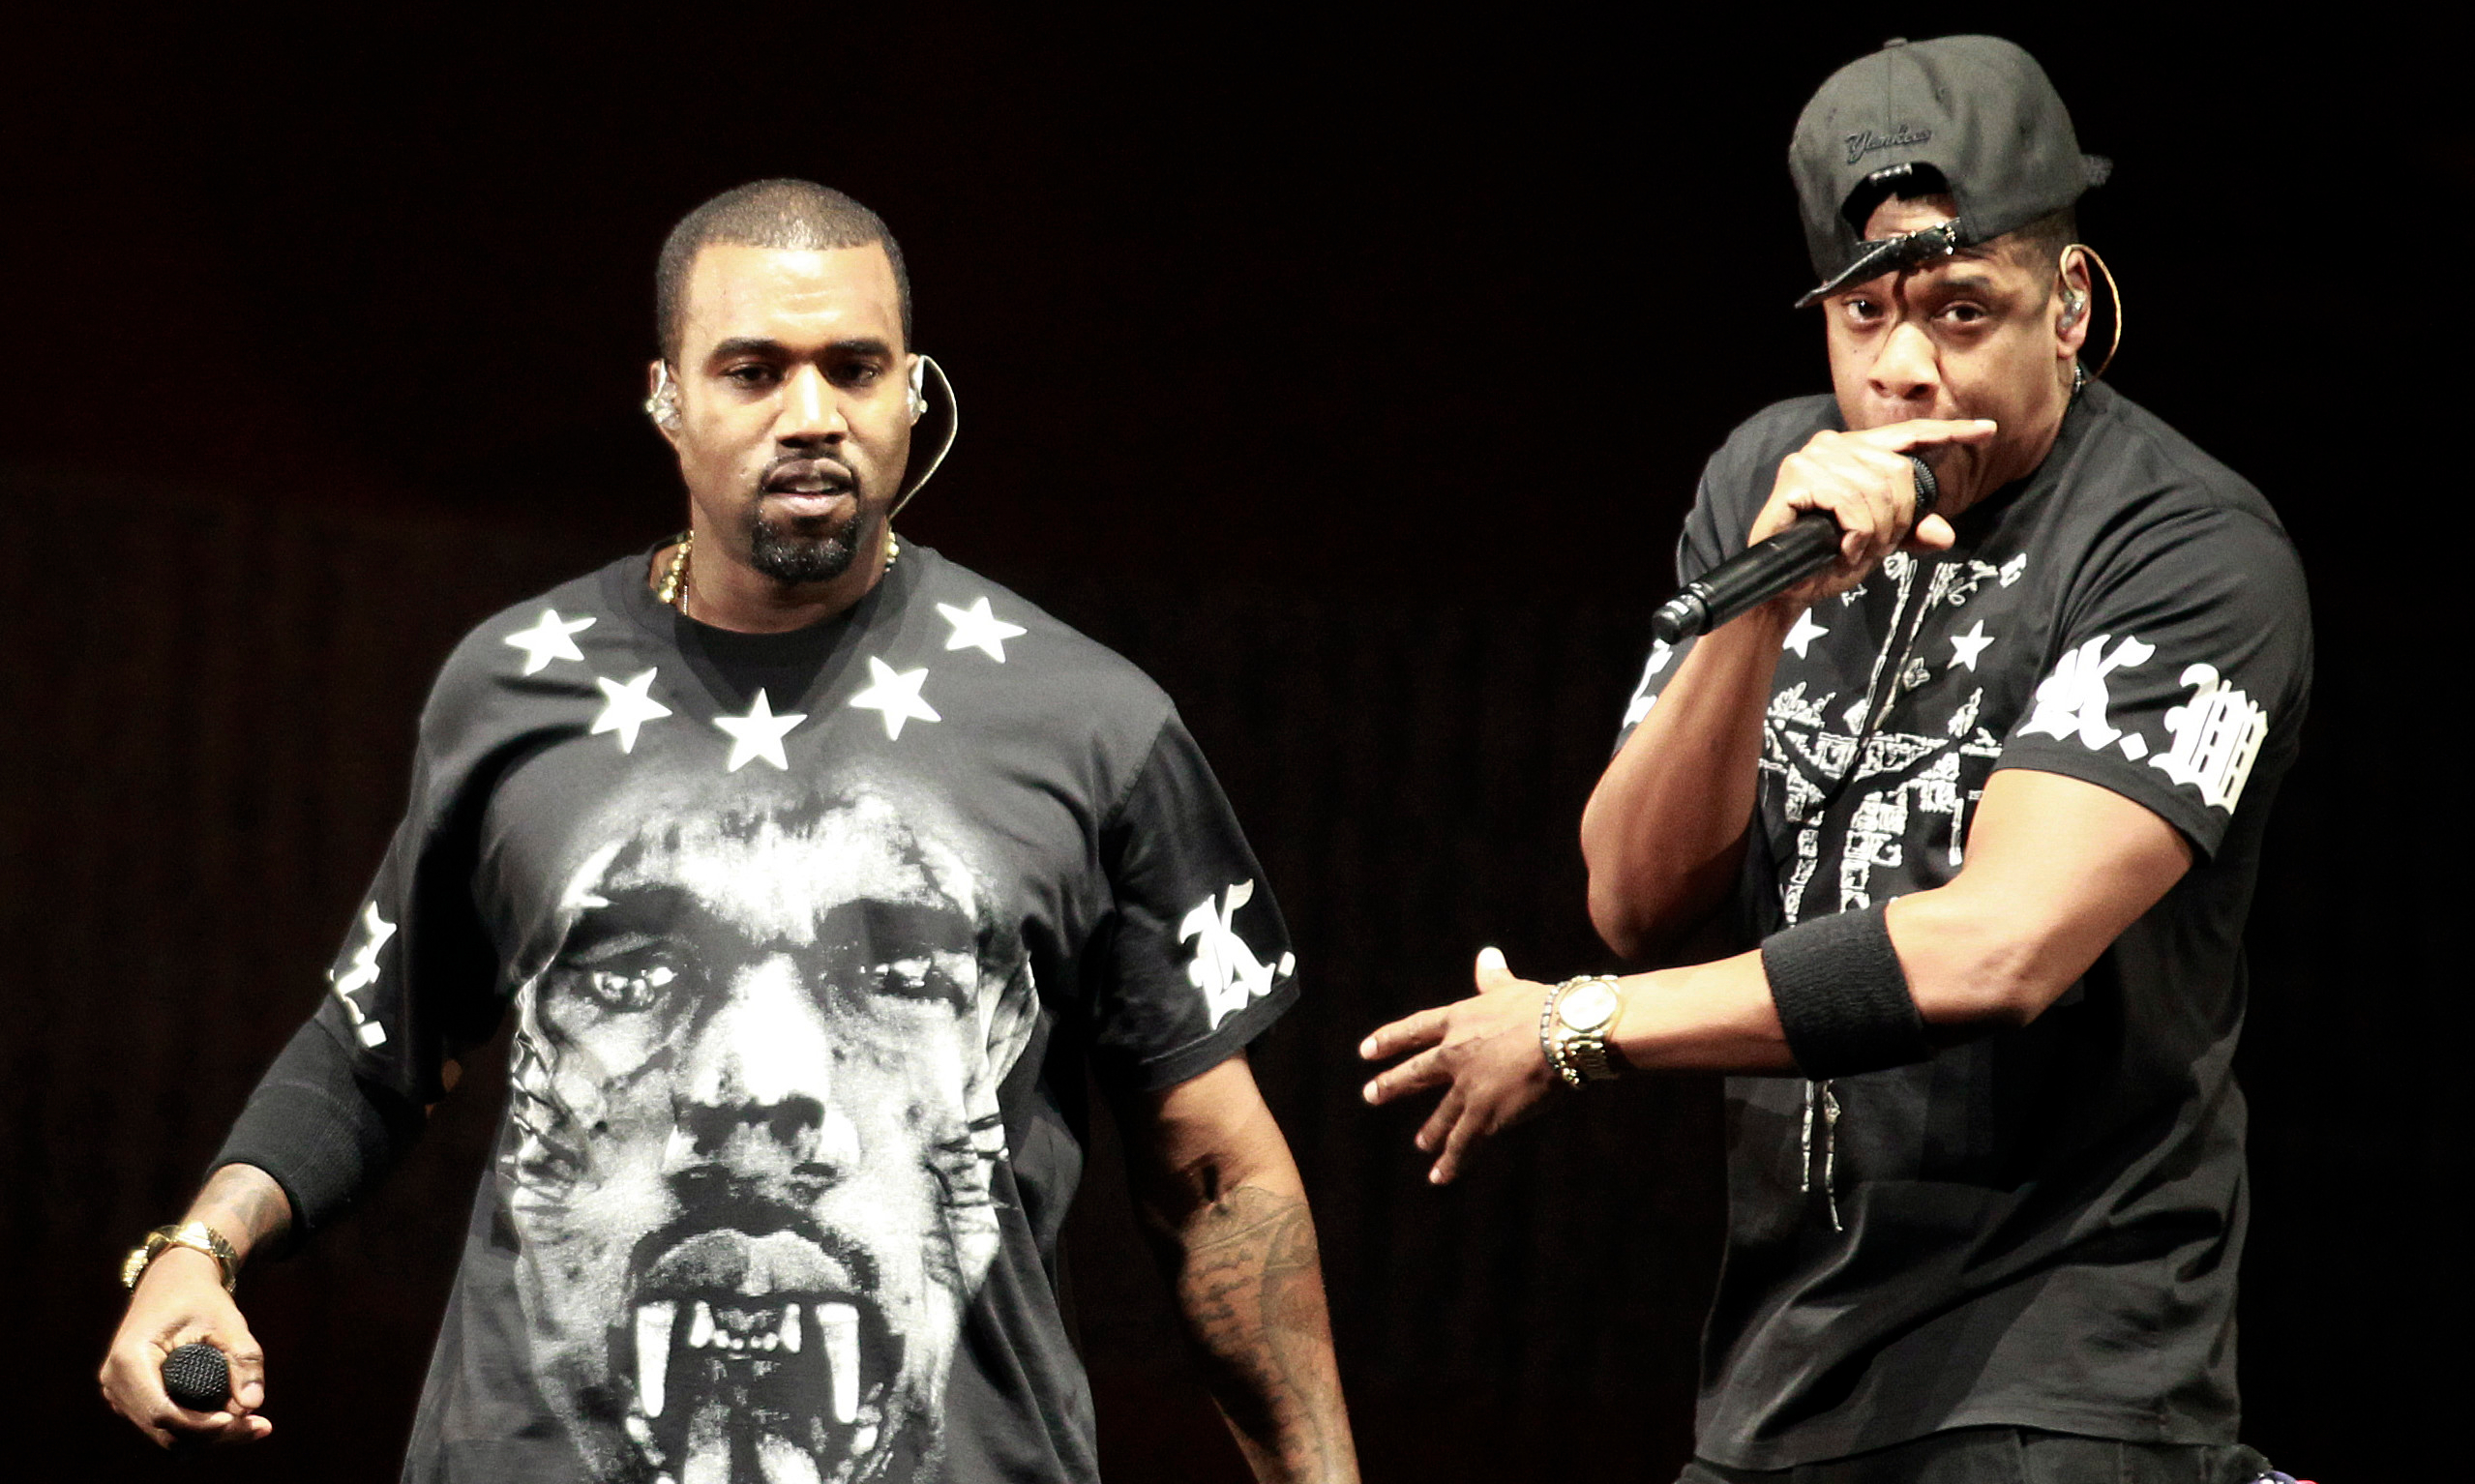 Jay Z and Kanye West will be at the LG Arena in Birmingham 2012